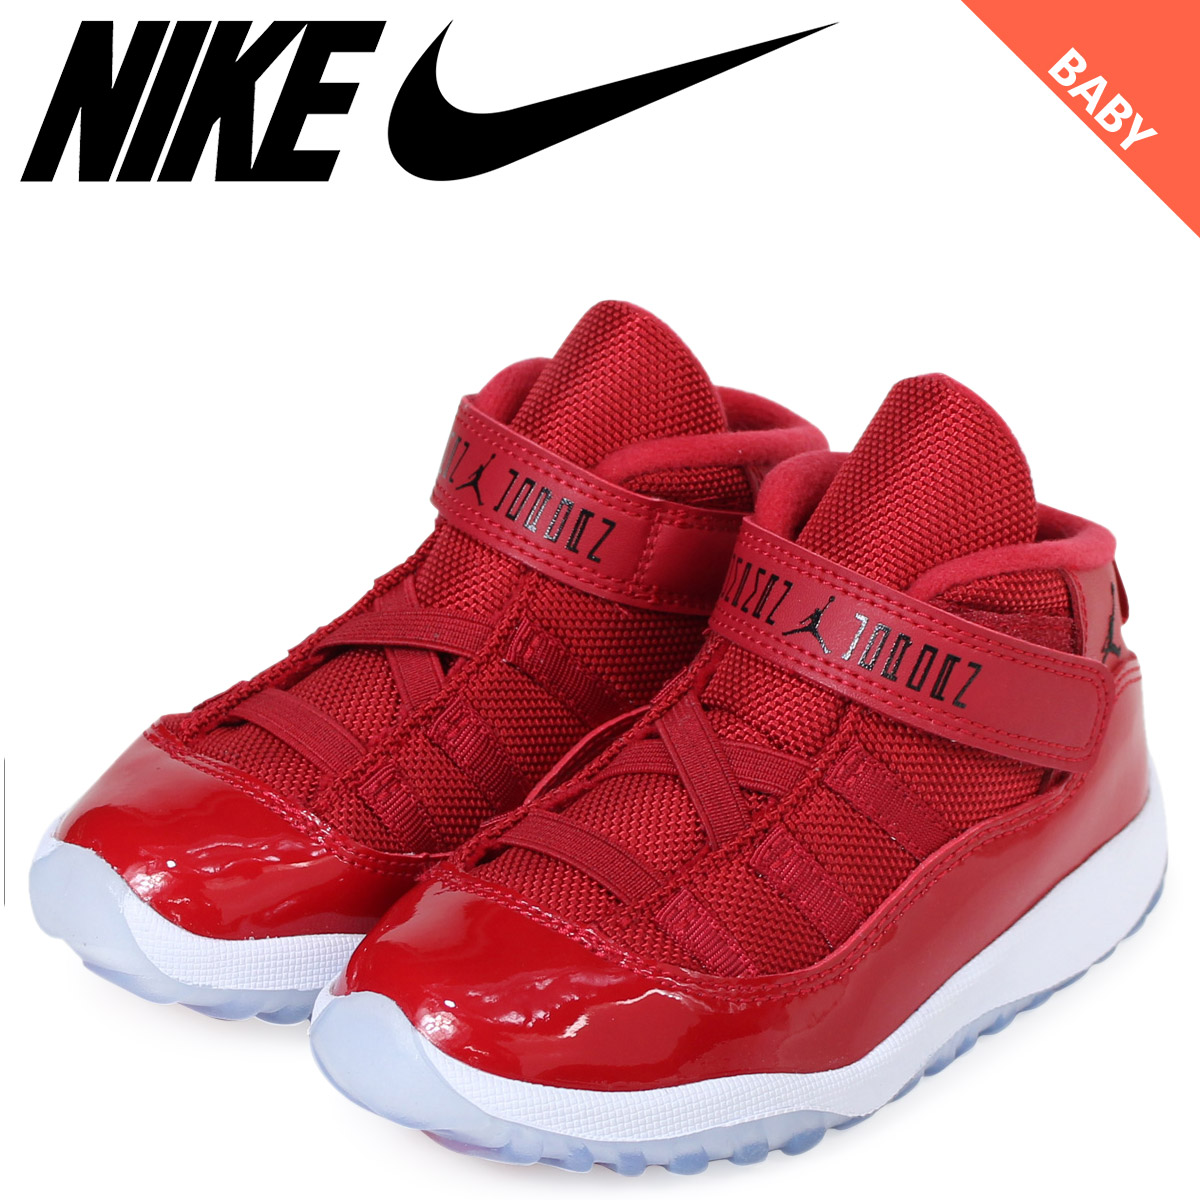 best service 27095 5aff9 ... best nike nike air jordan 11 baby sneakers air jordan 11 bt win like 96  378040